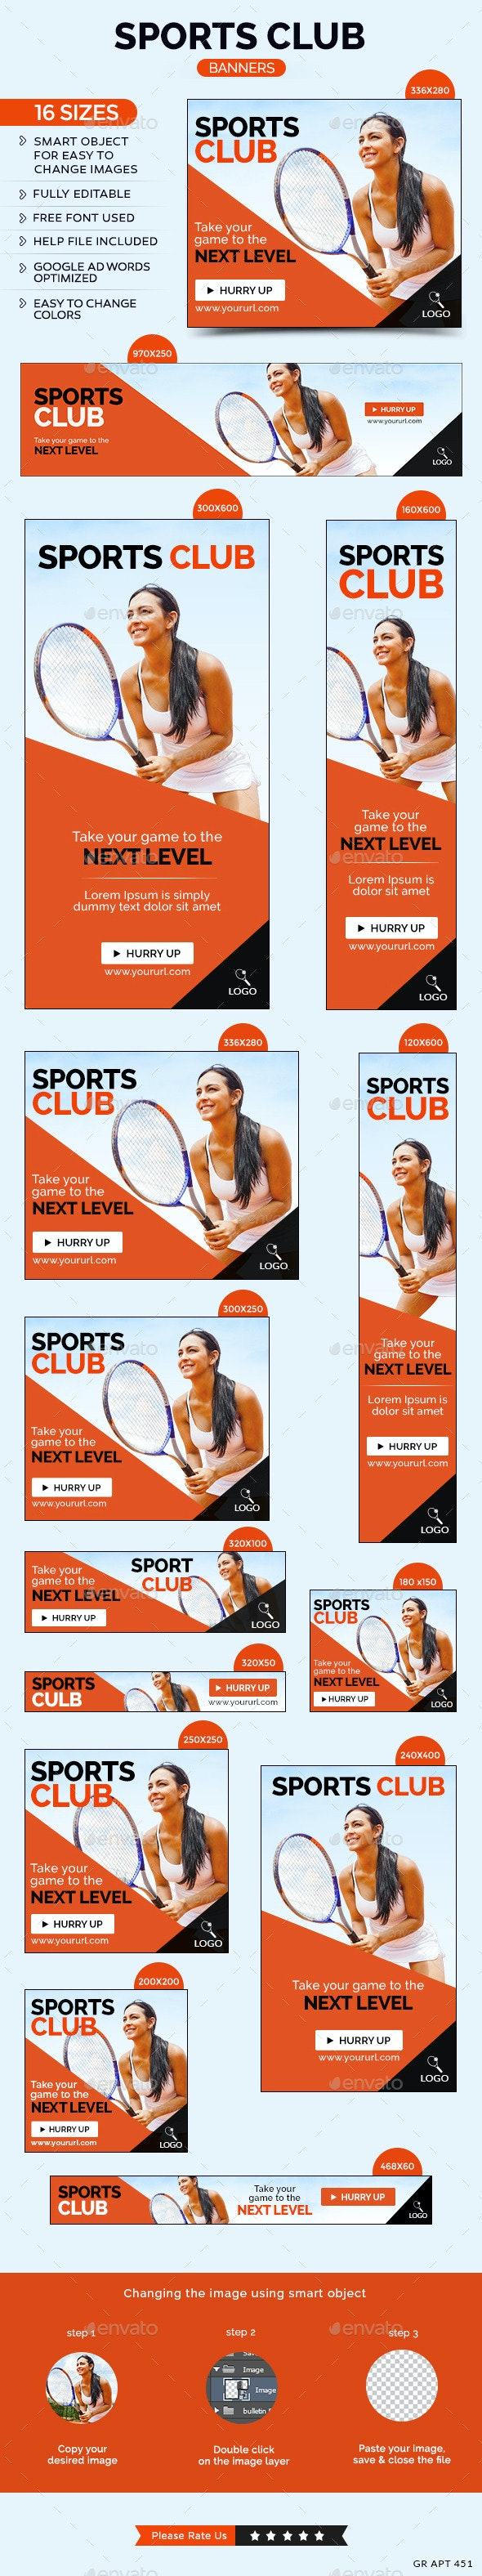 Sports Club Banners - Banners & Ads Web Elements